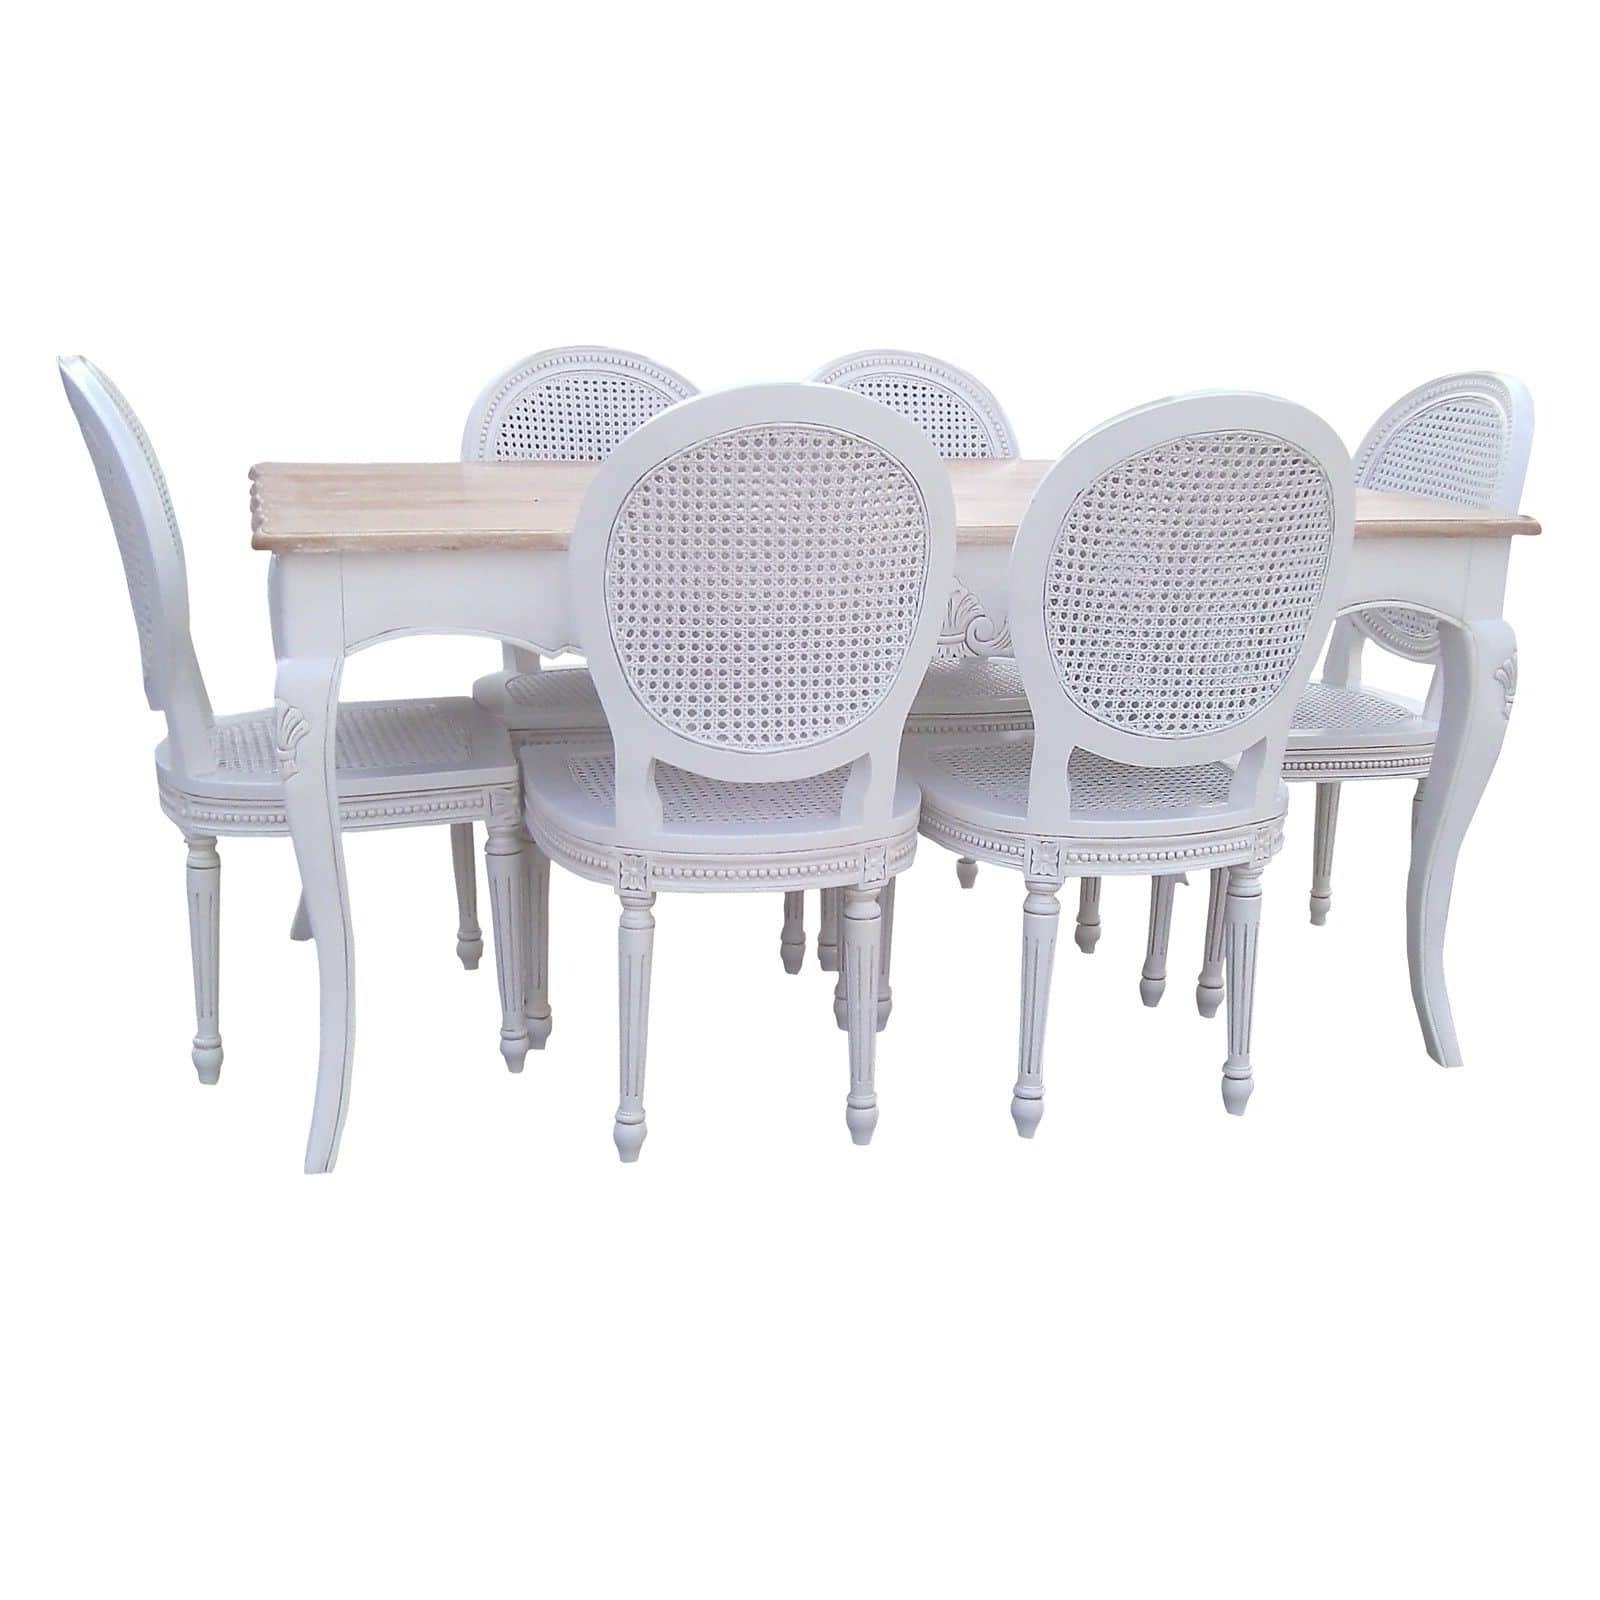 Famous French Chateau White Mahogany Dining Table Set With 6 Chairs For White Dining Tables With 6 Chairs (View 7 of 25)